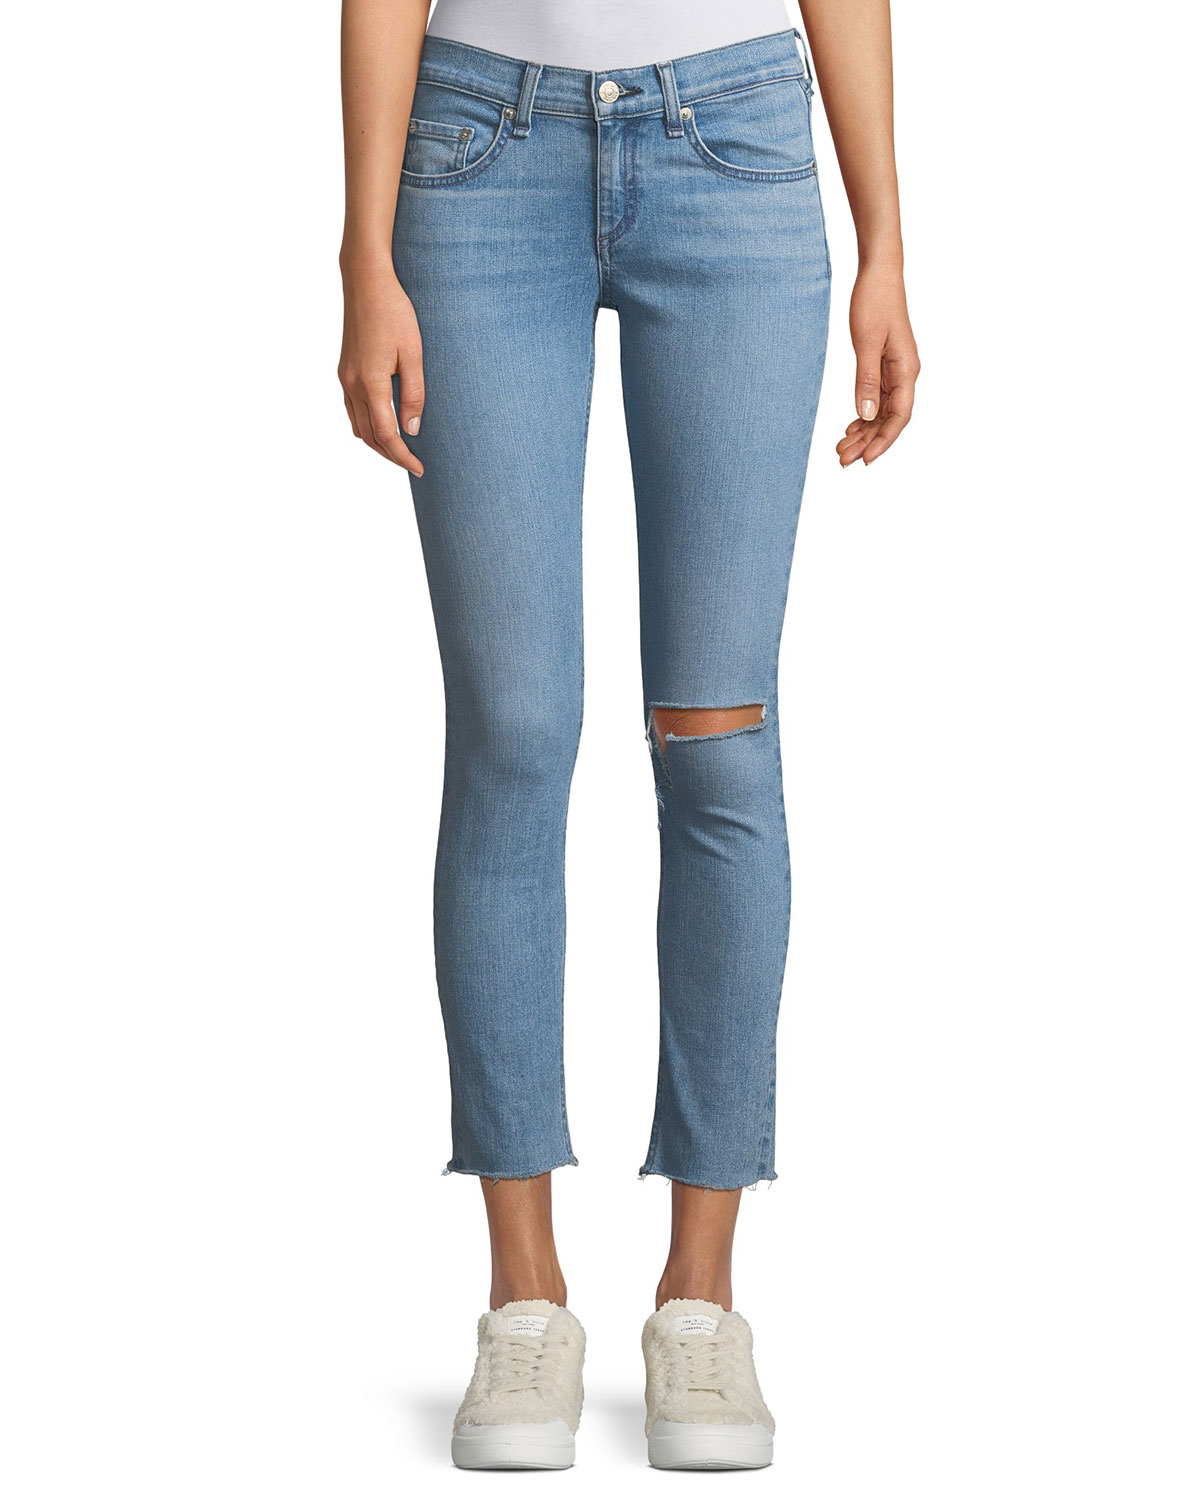 Classic Mid-rise Ankle Skinny-Leg Jeans